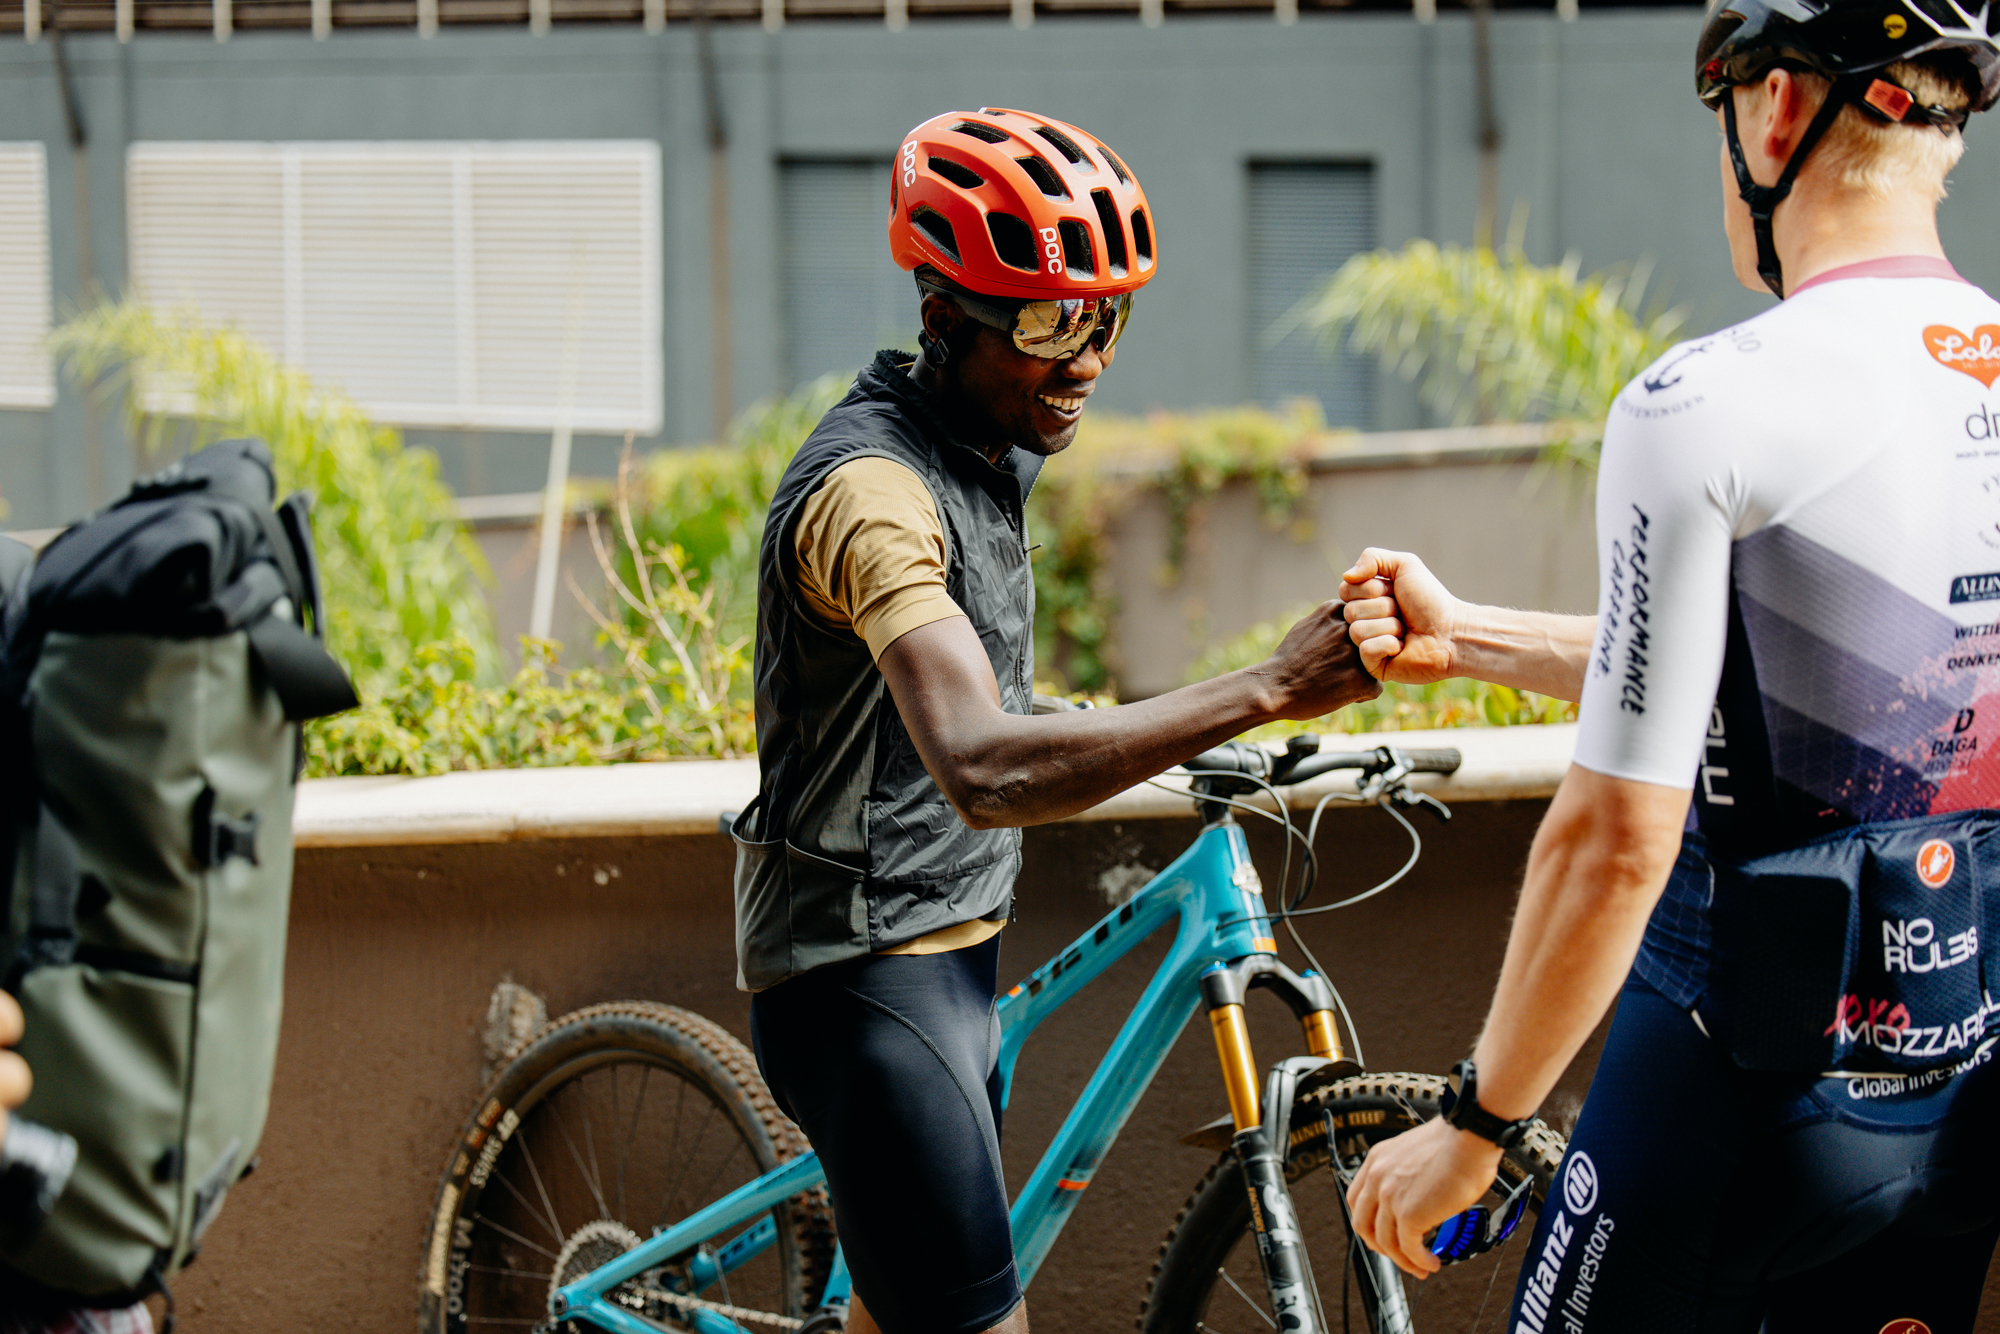 East African gravel rider Sule Kangangi bumping fists with a white Wahoo teammate